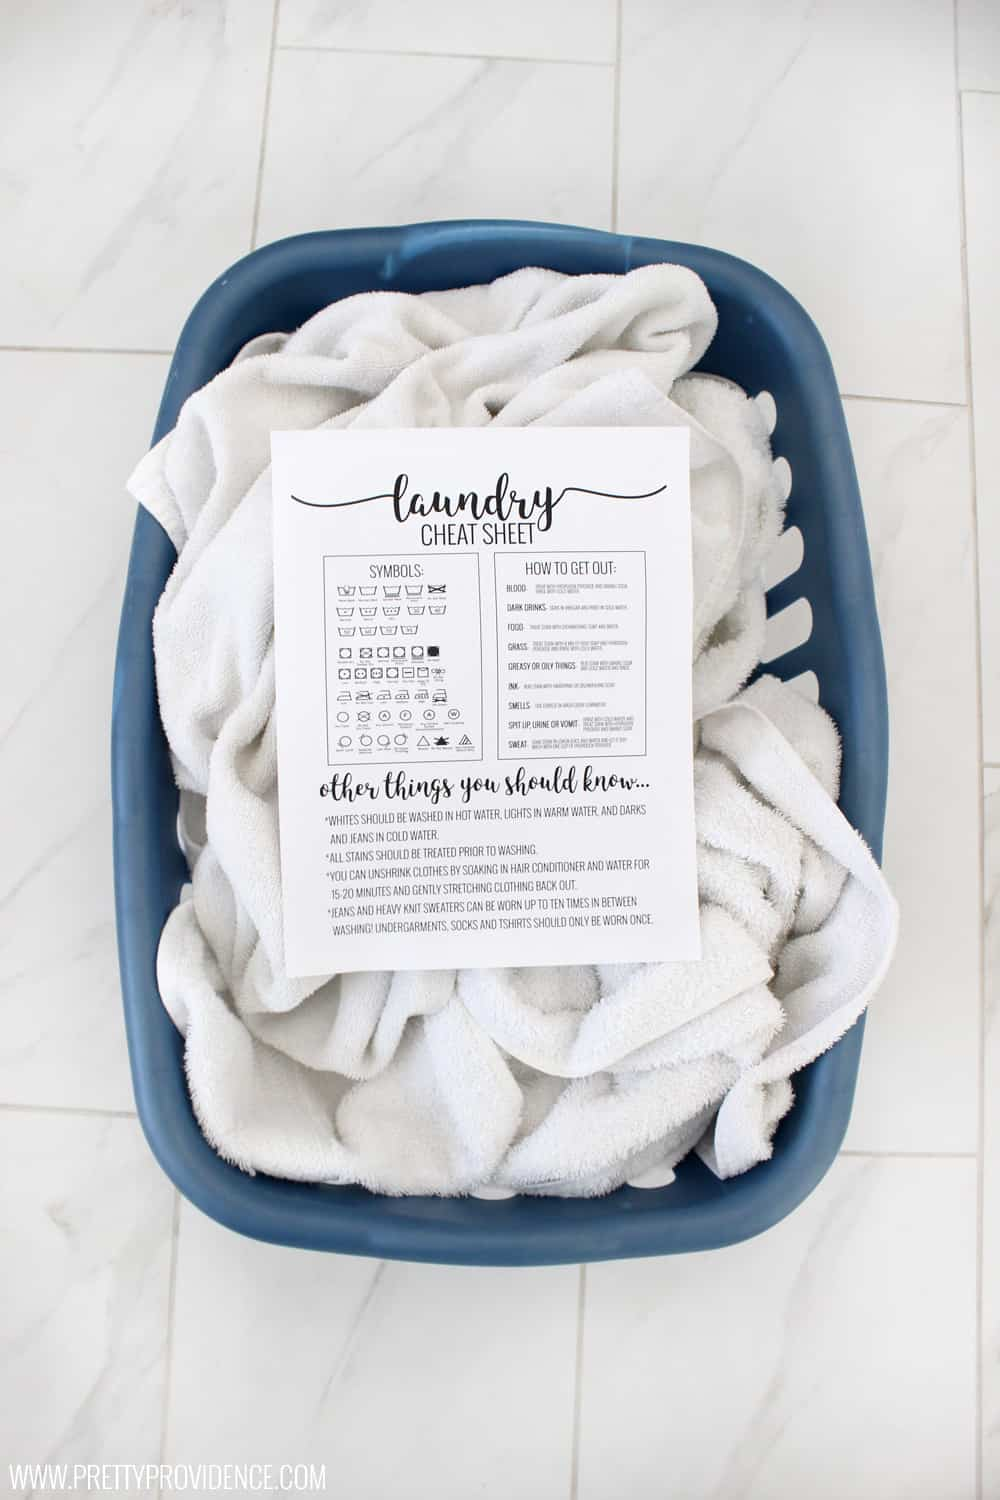 Okay this laundry cheat sheet is LIFE CHANGING! Super easy reference guide on how to get out virtually anything- and knowing what all the symbols mean at a glance! Must save.